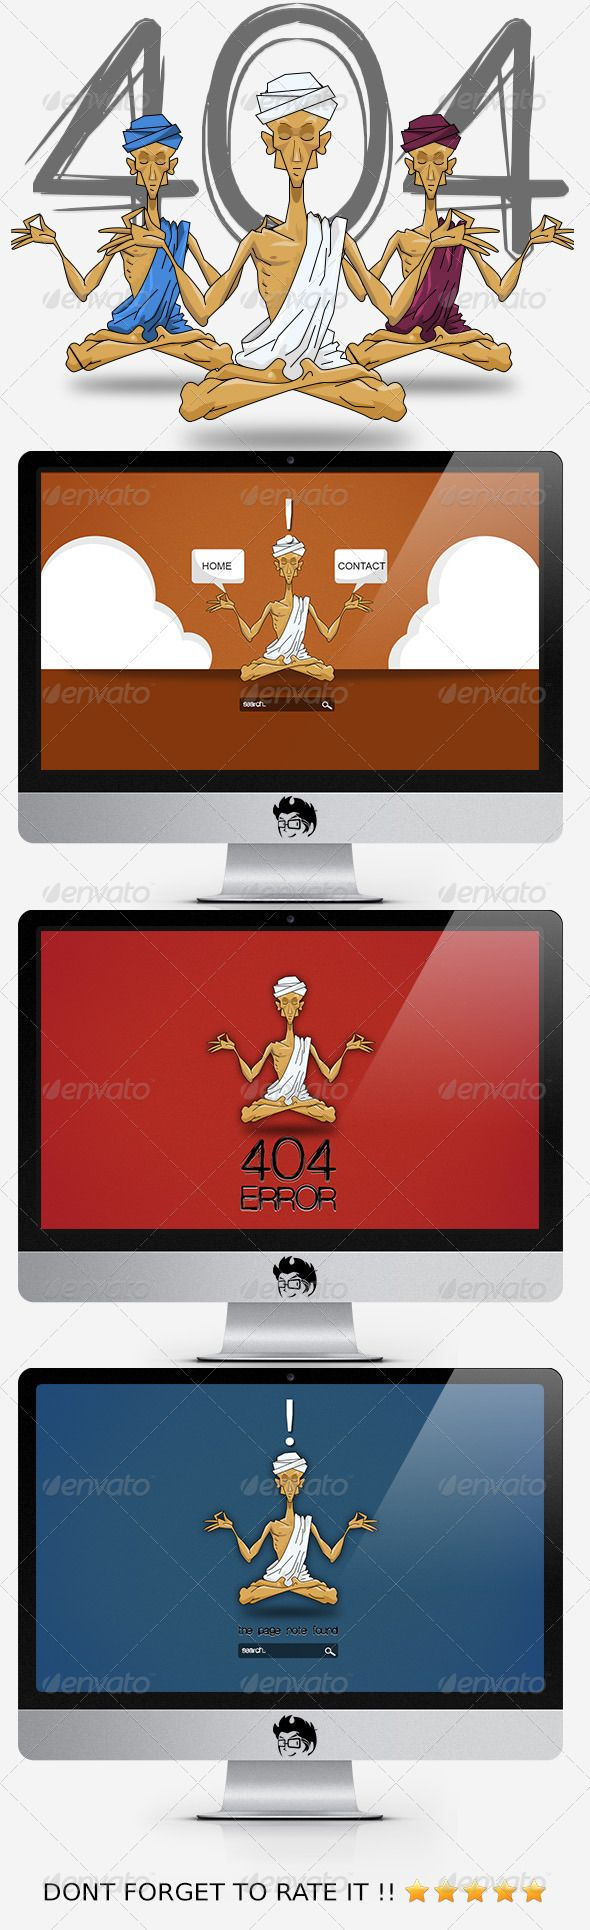 Yoga 404 Error Web Page - #404 #Pages #Web #Elements Download here: https://graphicriver.net/item/yoga-404-error-web-page/3065734?ref=alena994